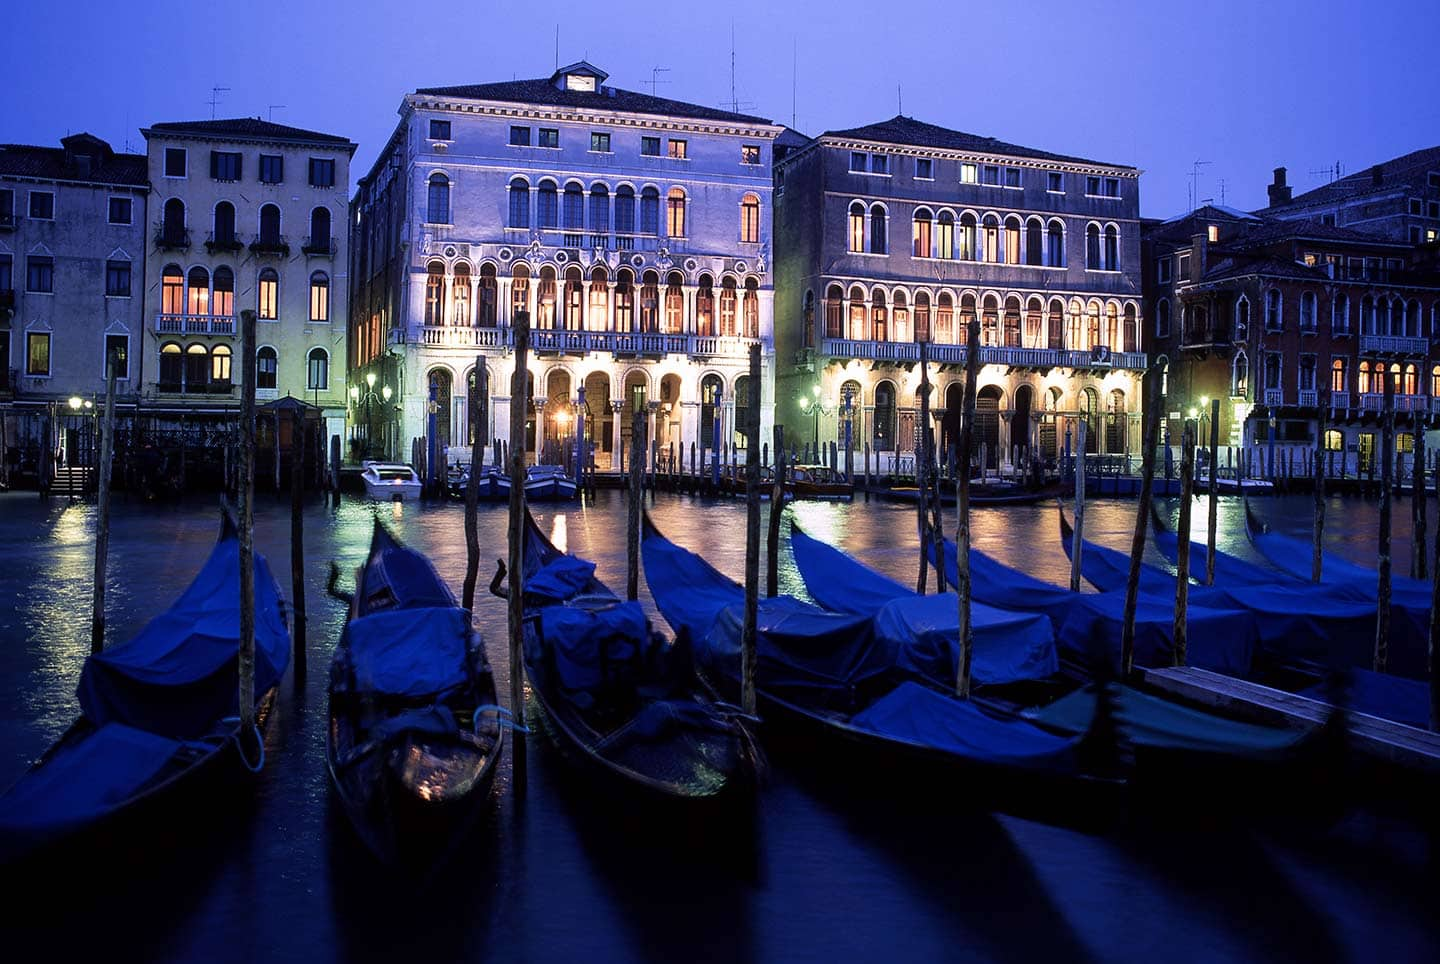 Image of gondolas on the Grand Canal a highlight of any Venice day tour